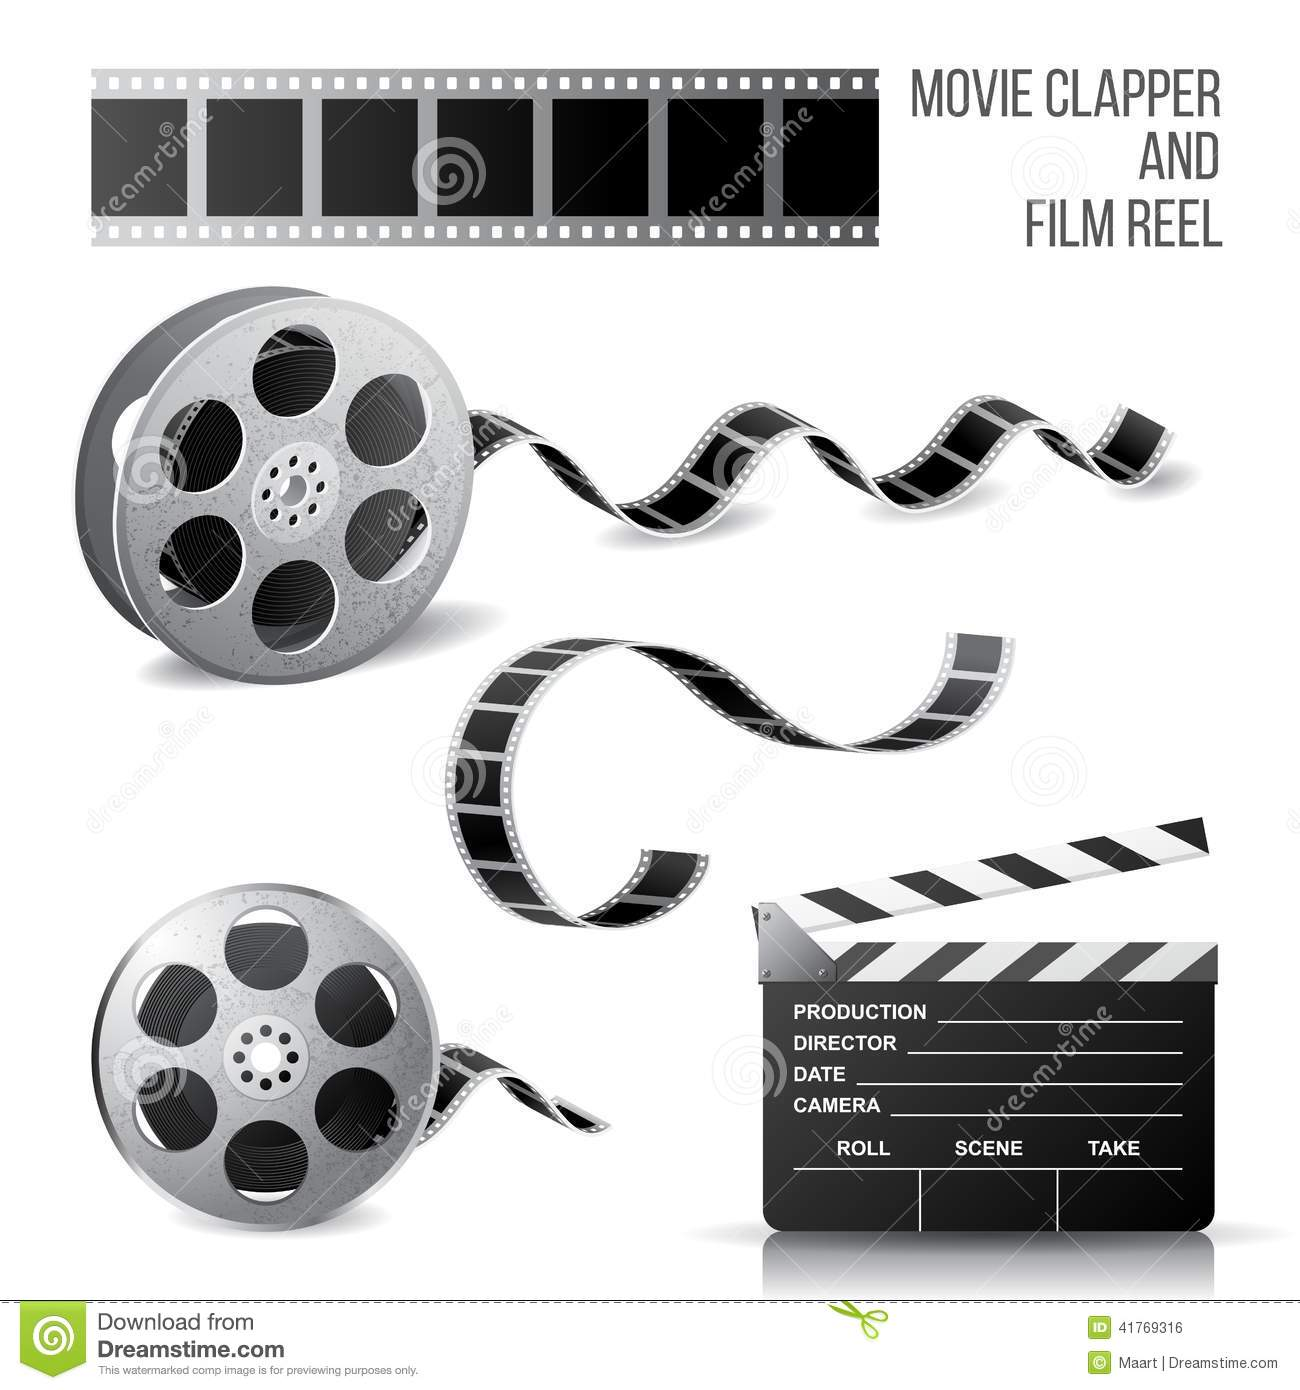 Movie clapper and film reel